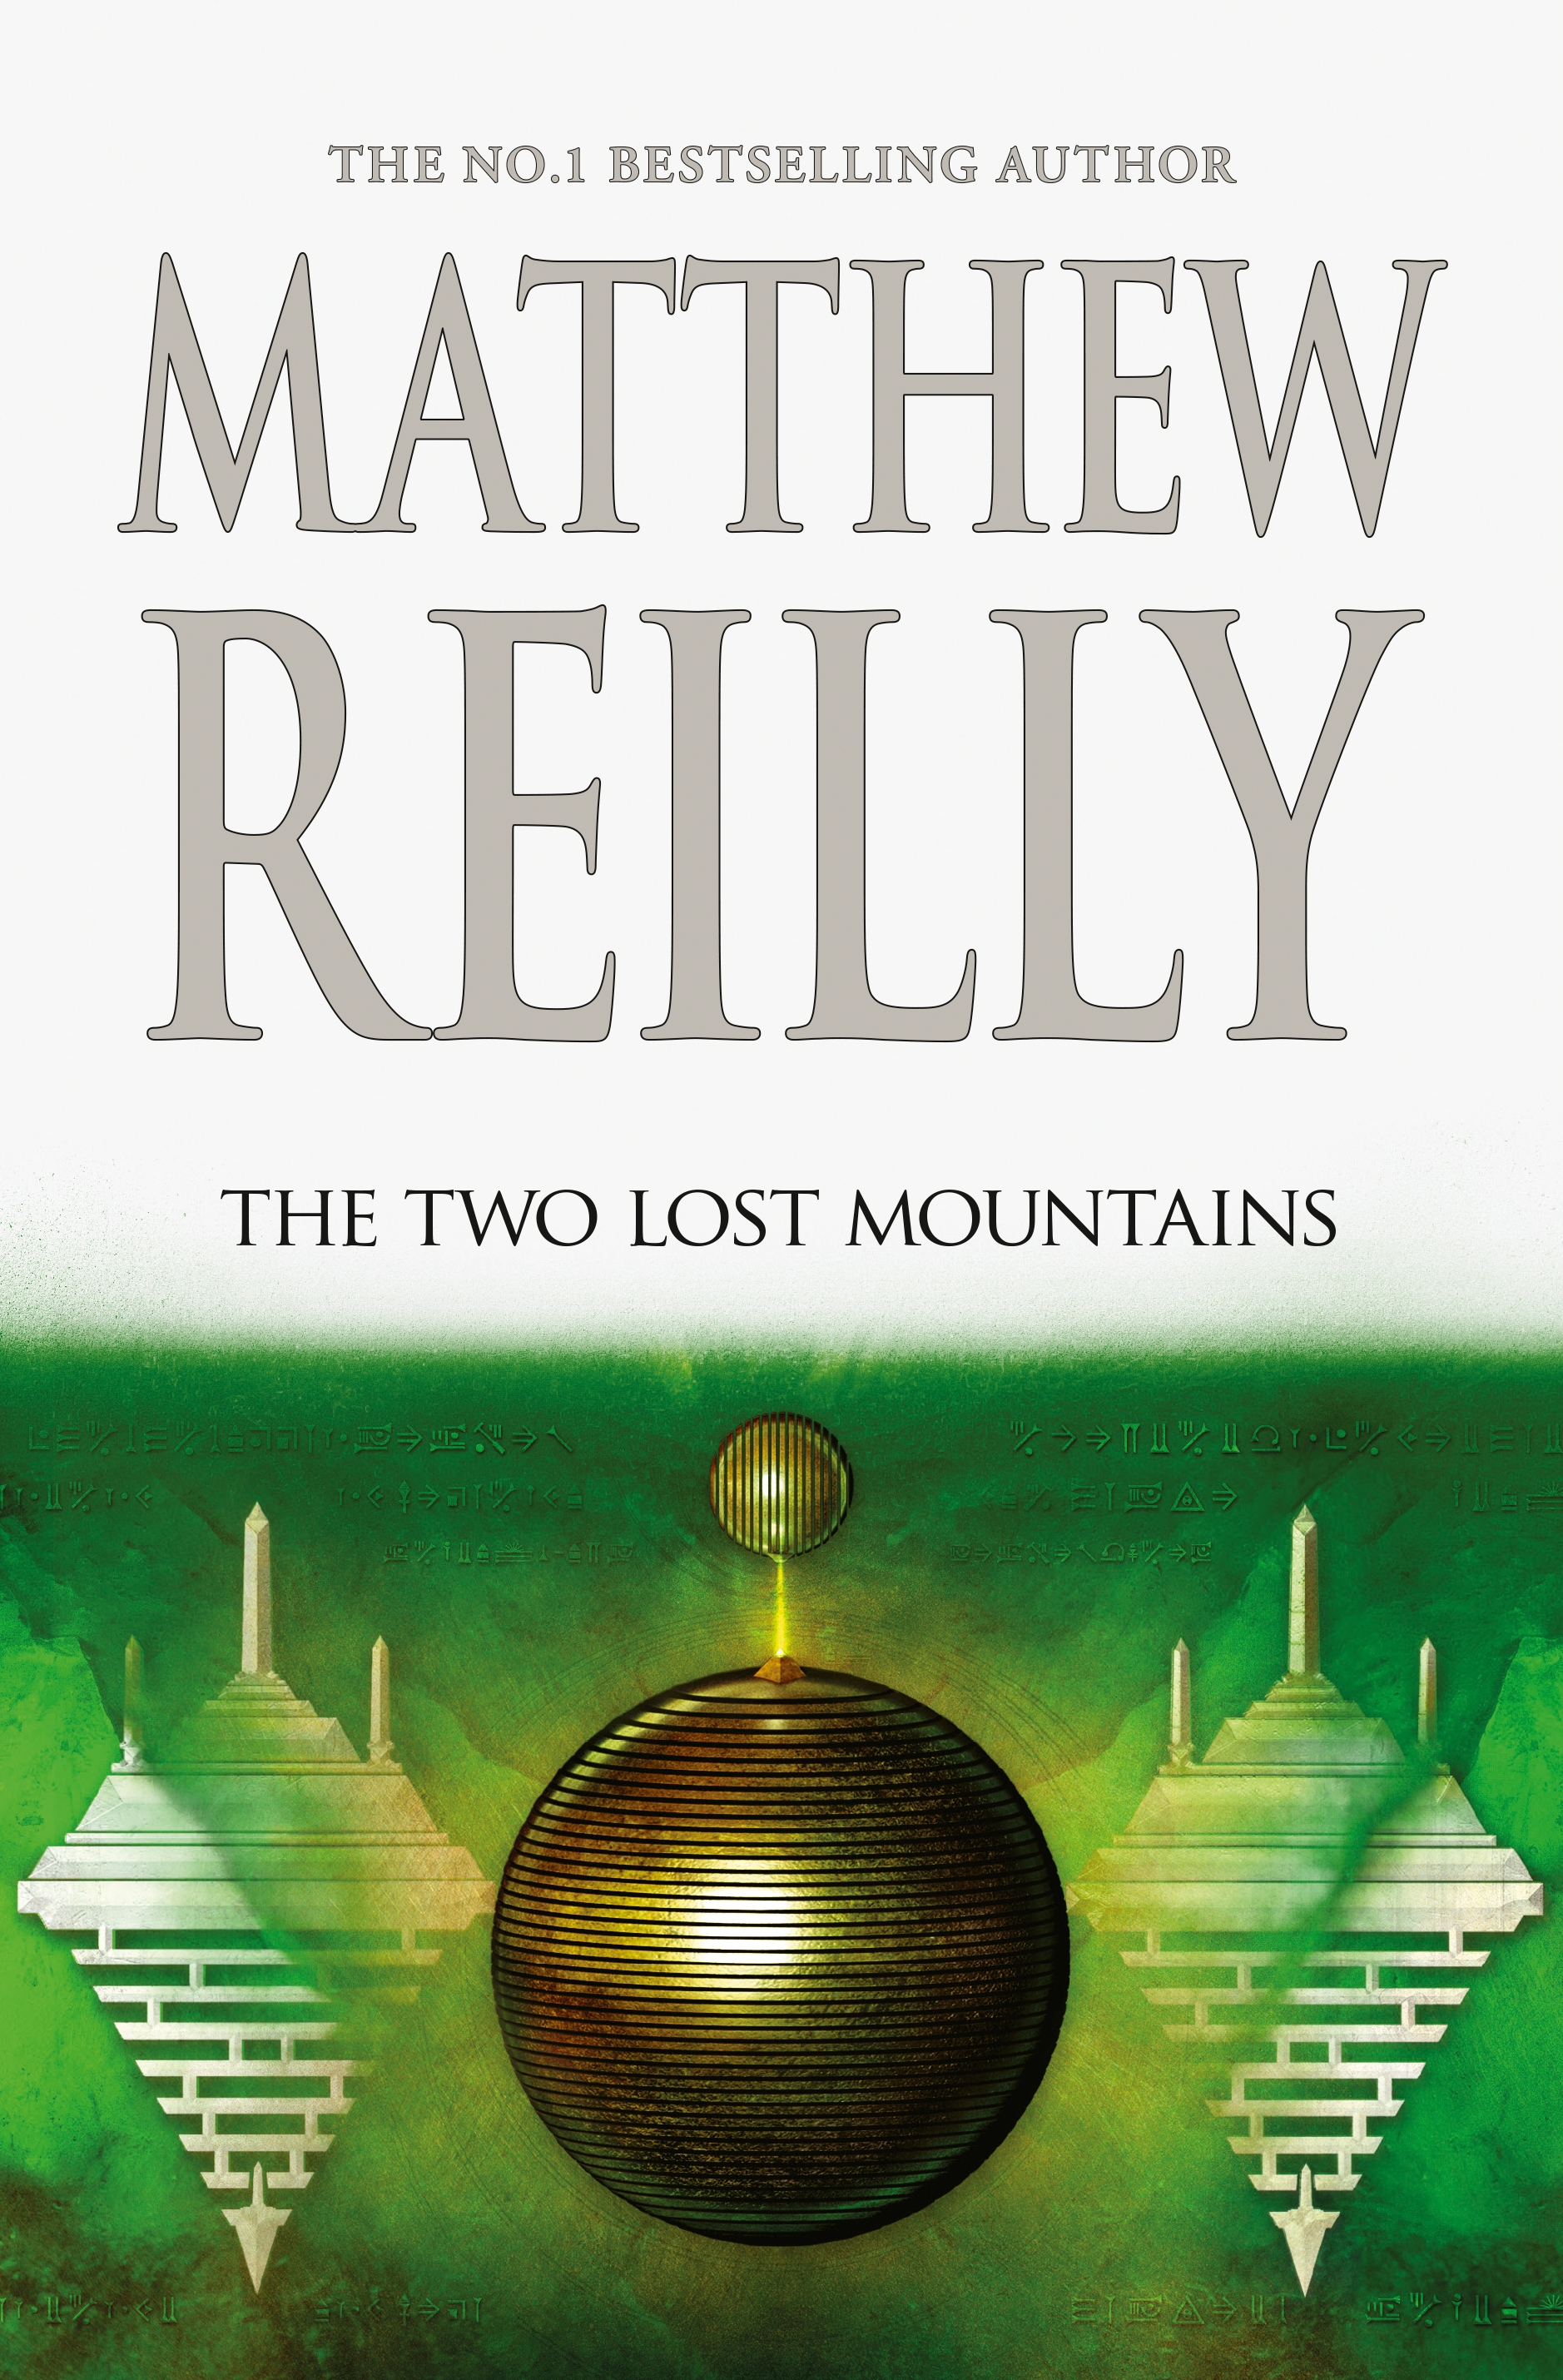 Q&A: The Two Lost Mountains by Matthew Reilly